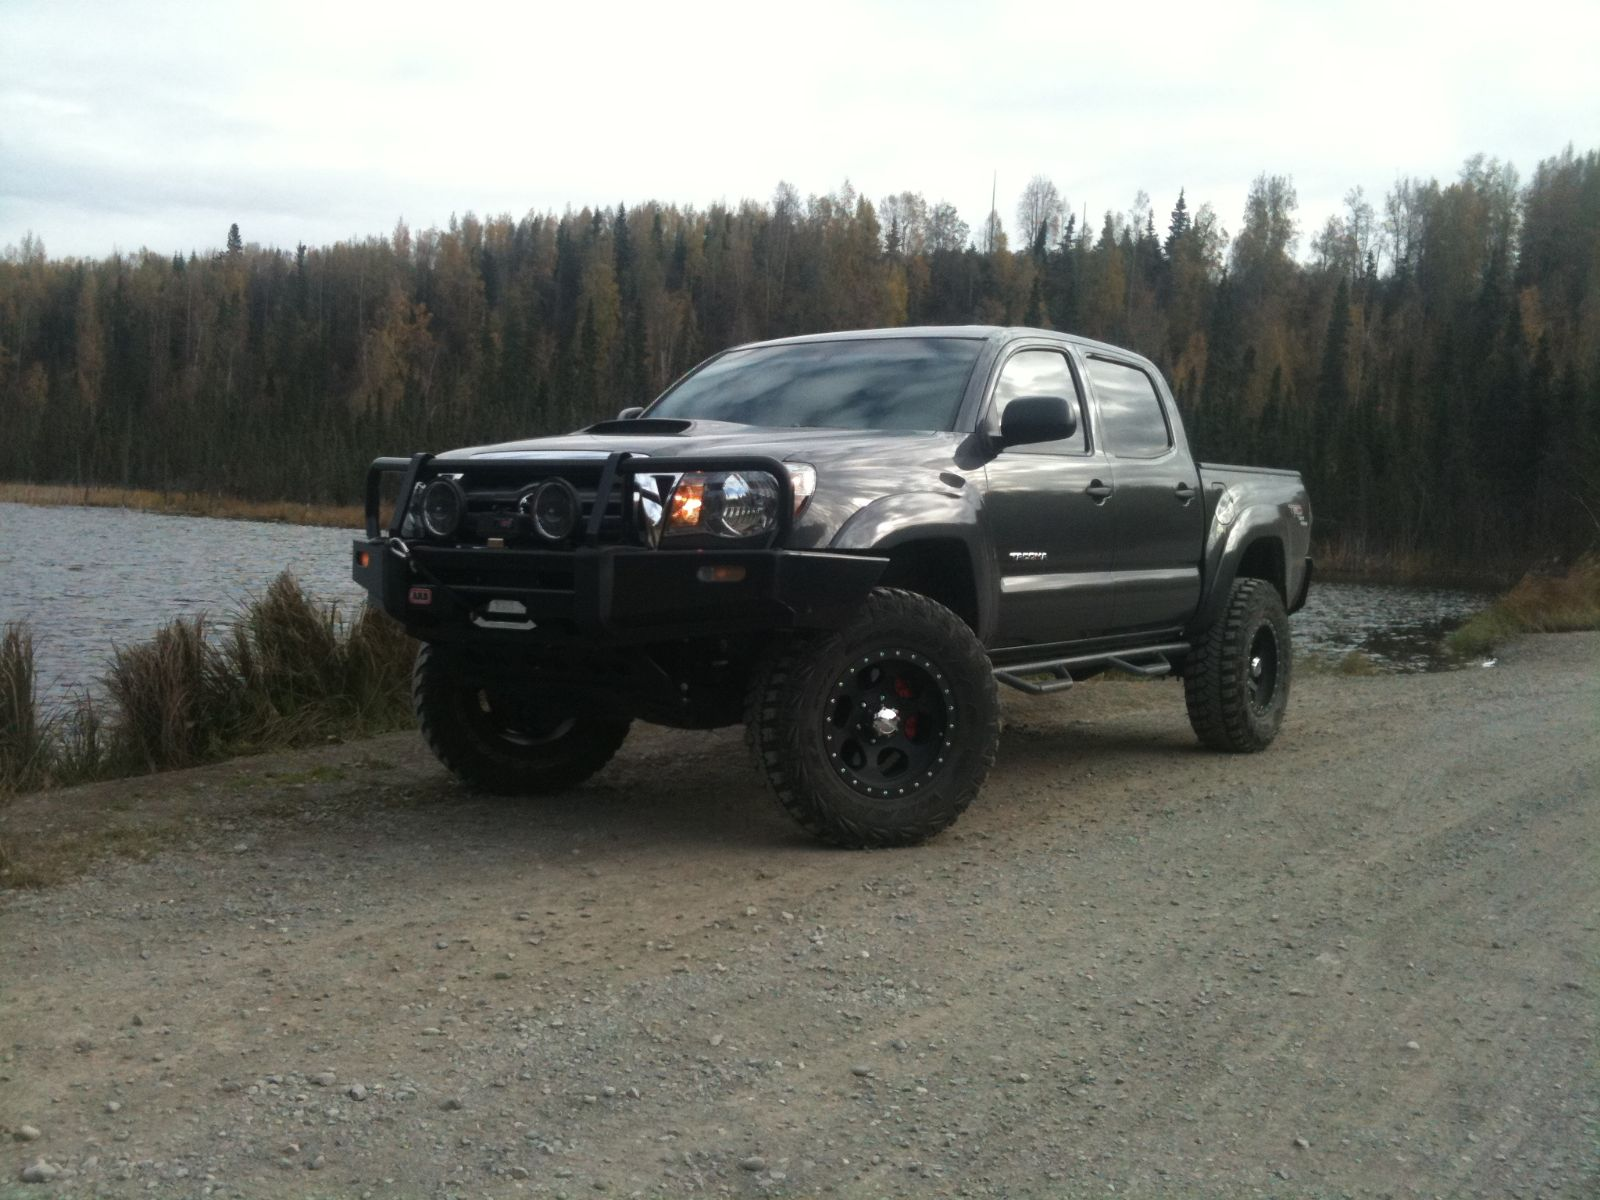 Lifted Toyota Tacoma For Sale  Lifted Toyota Tacoma For Sale  Lifted Toyota Tacoma For Sale  Lifted Toyota Tacoma For Sale